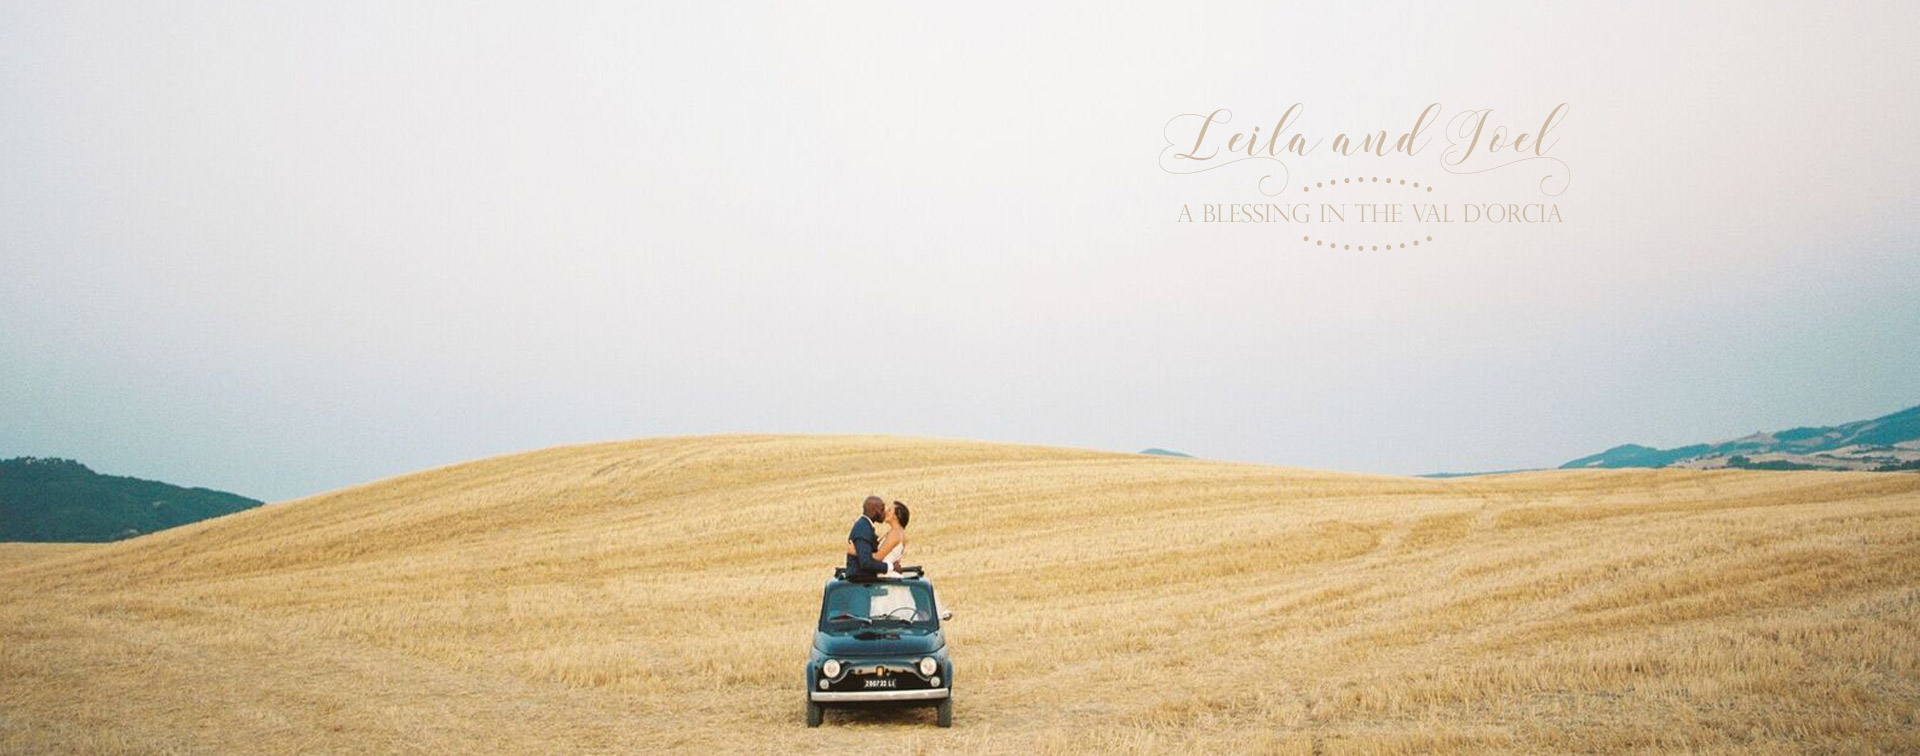 Stylish wedding Pienza Val D'Orcia fiat 500